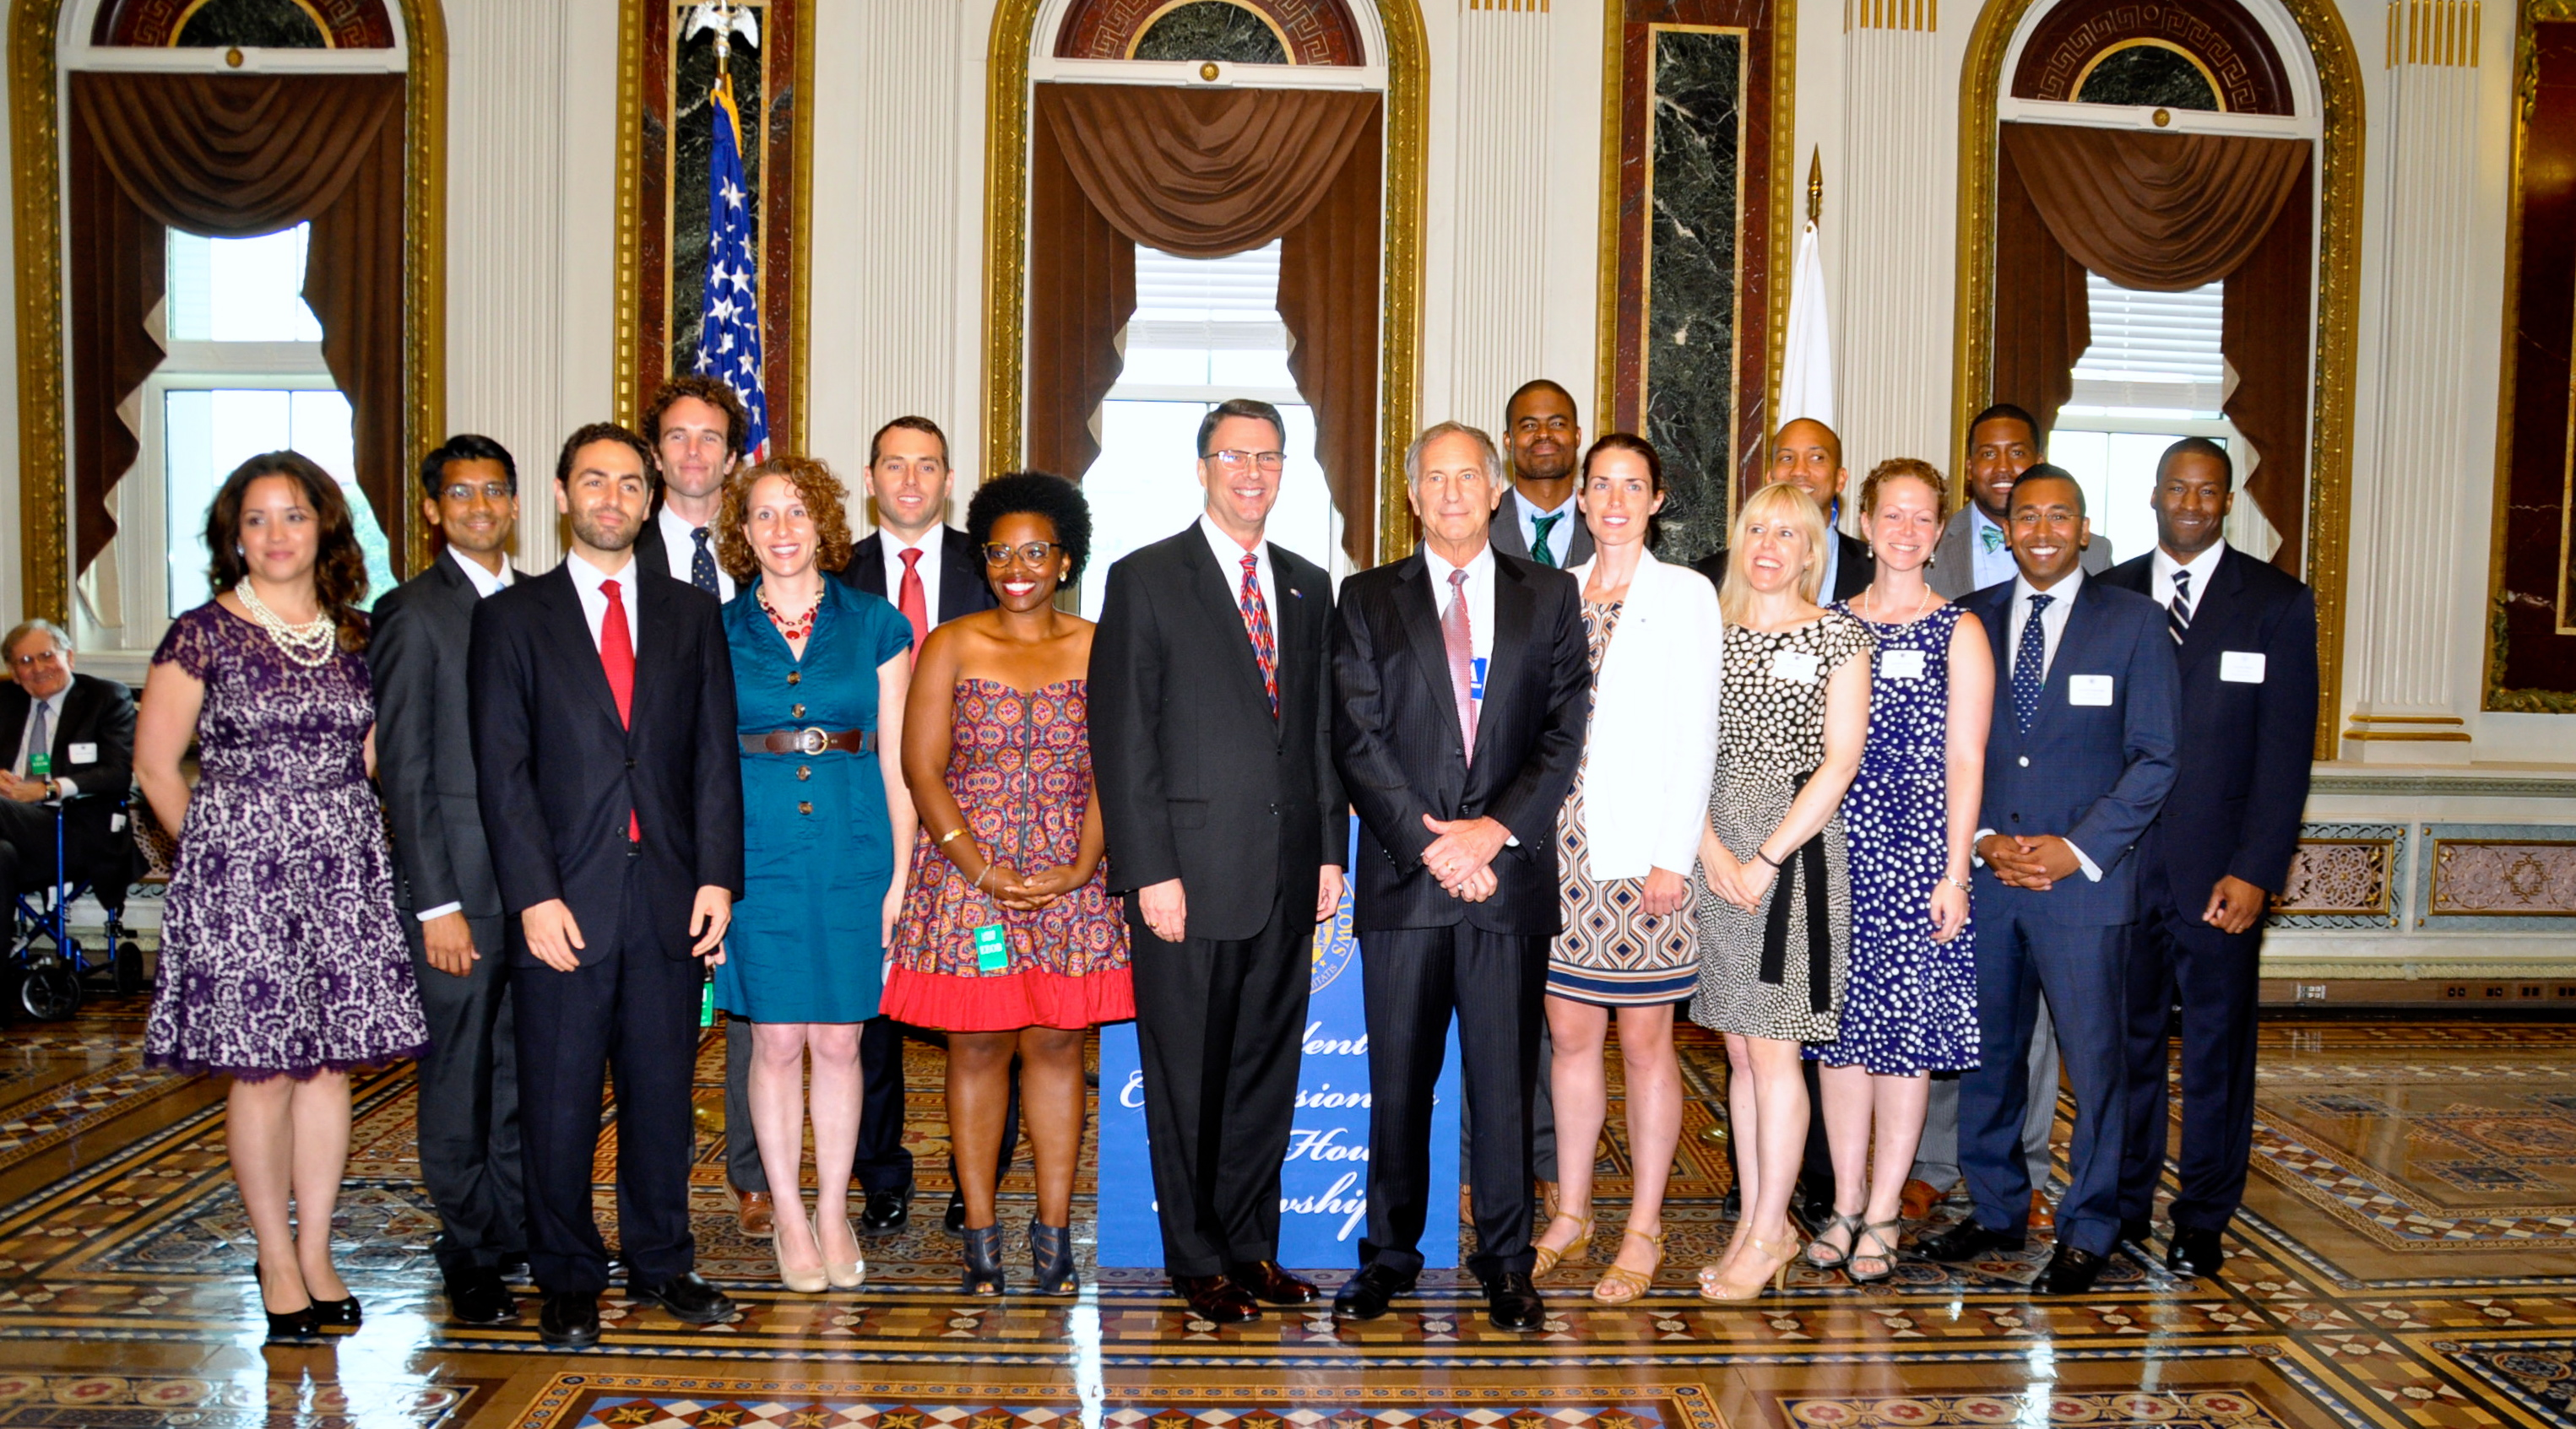 white house fellows essays The white house fellows office has had at least two black americans working inside the white house, (one on hbcu issues) the past two years and the fellows office deputy director is blandon david.